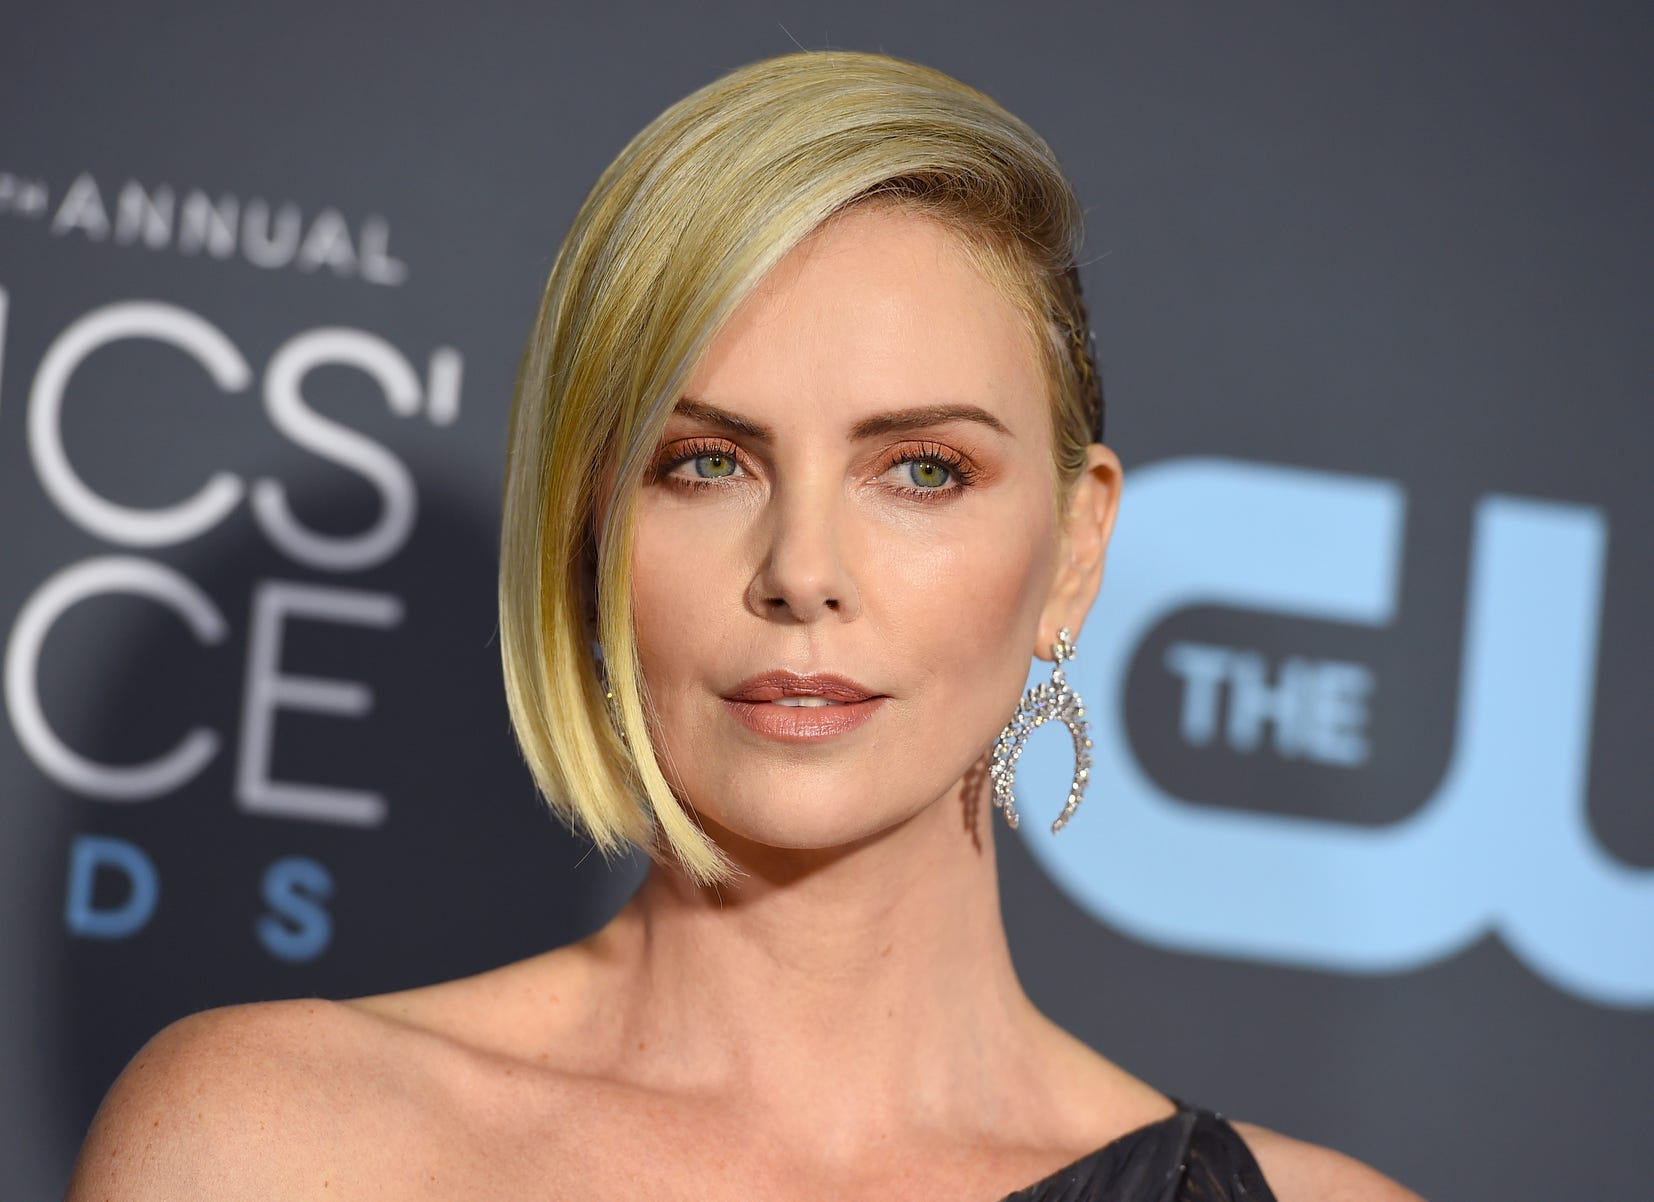 Charlize Theron has her Hollywood glamour locked down!